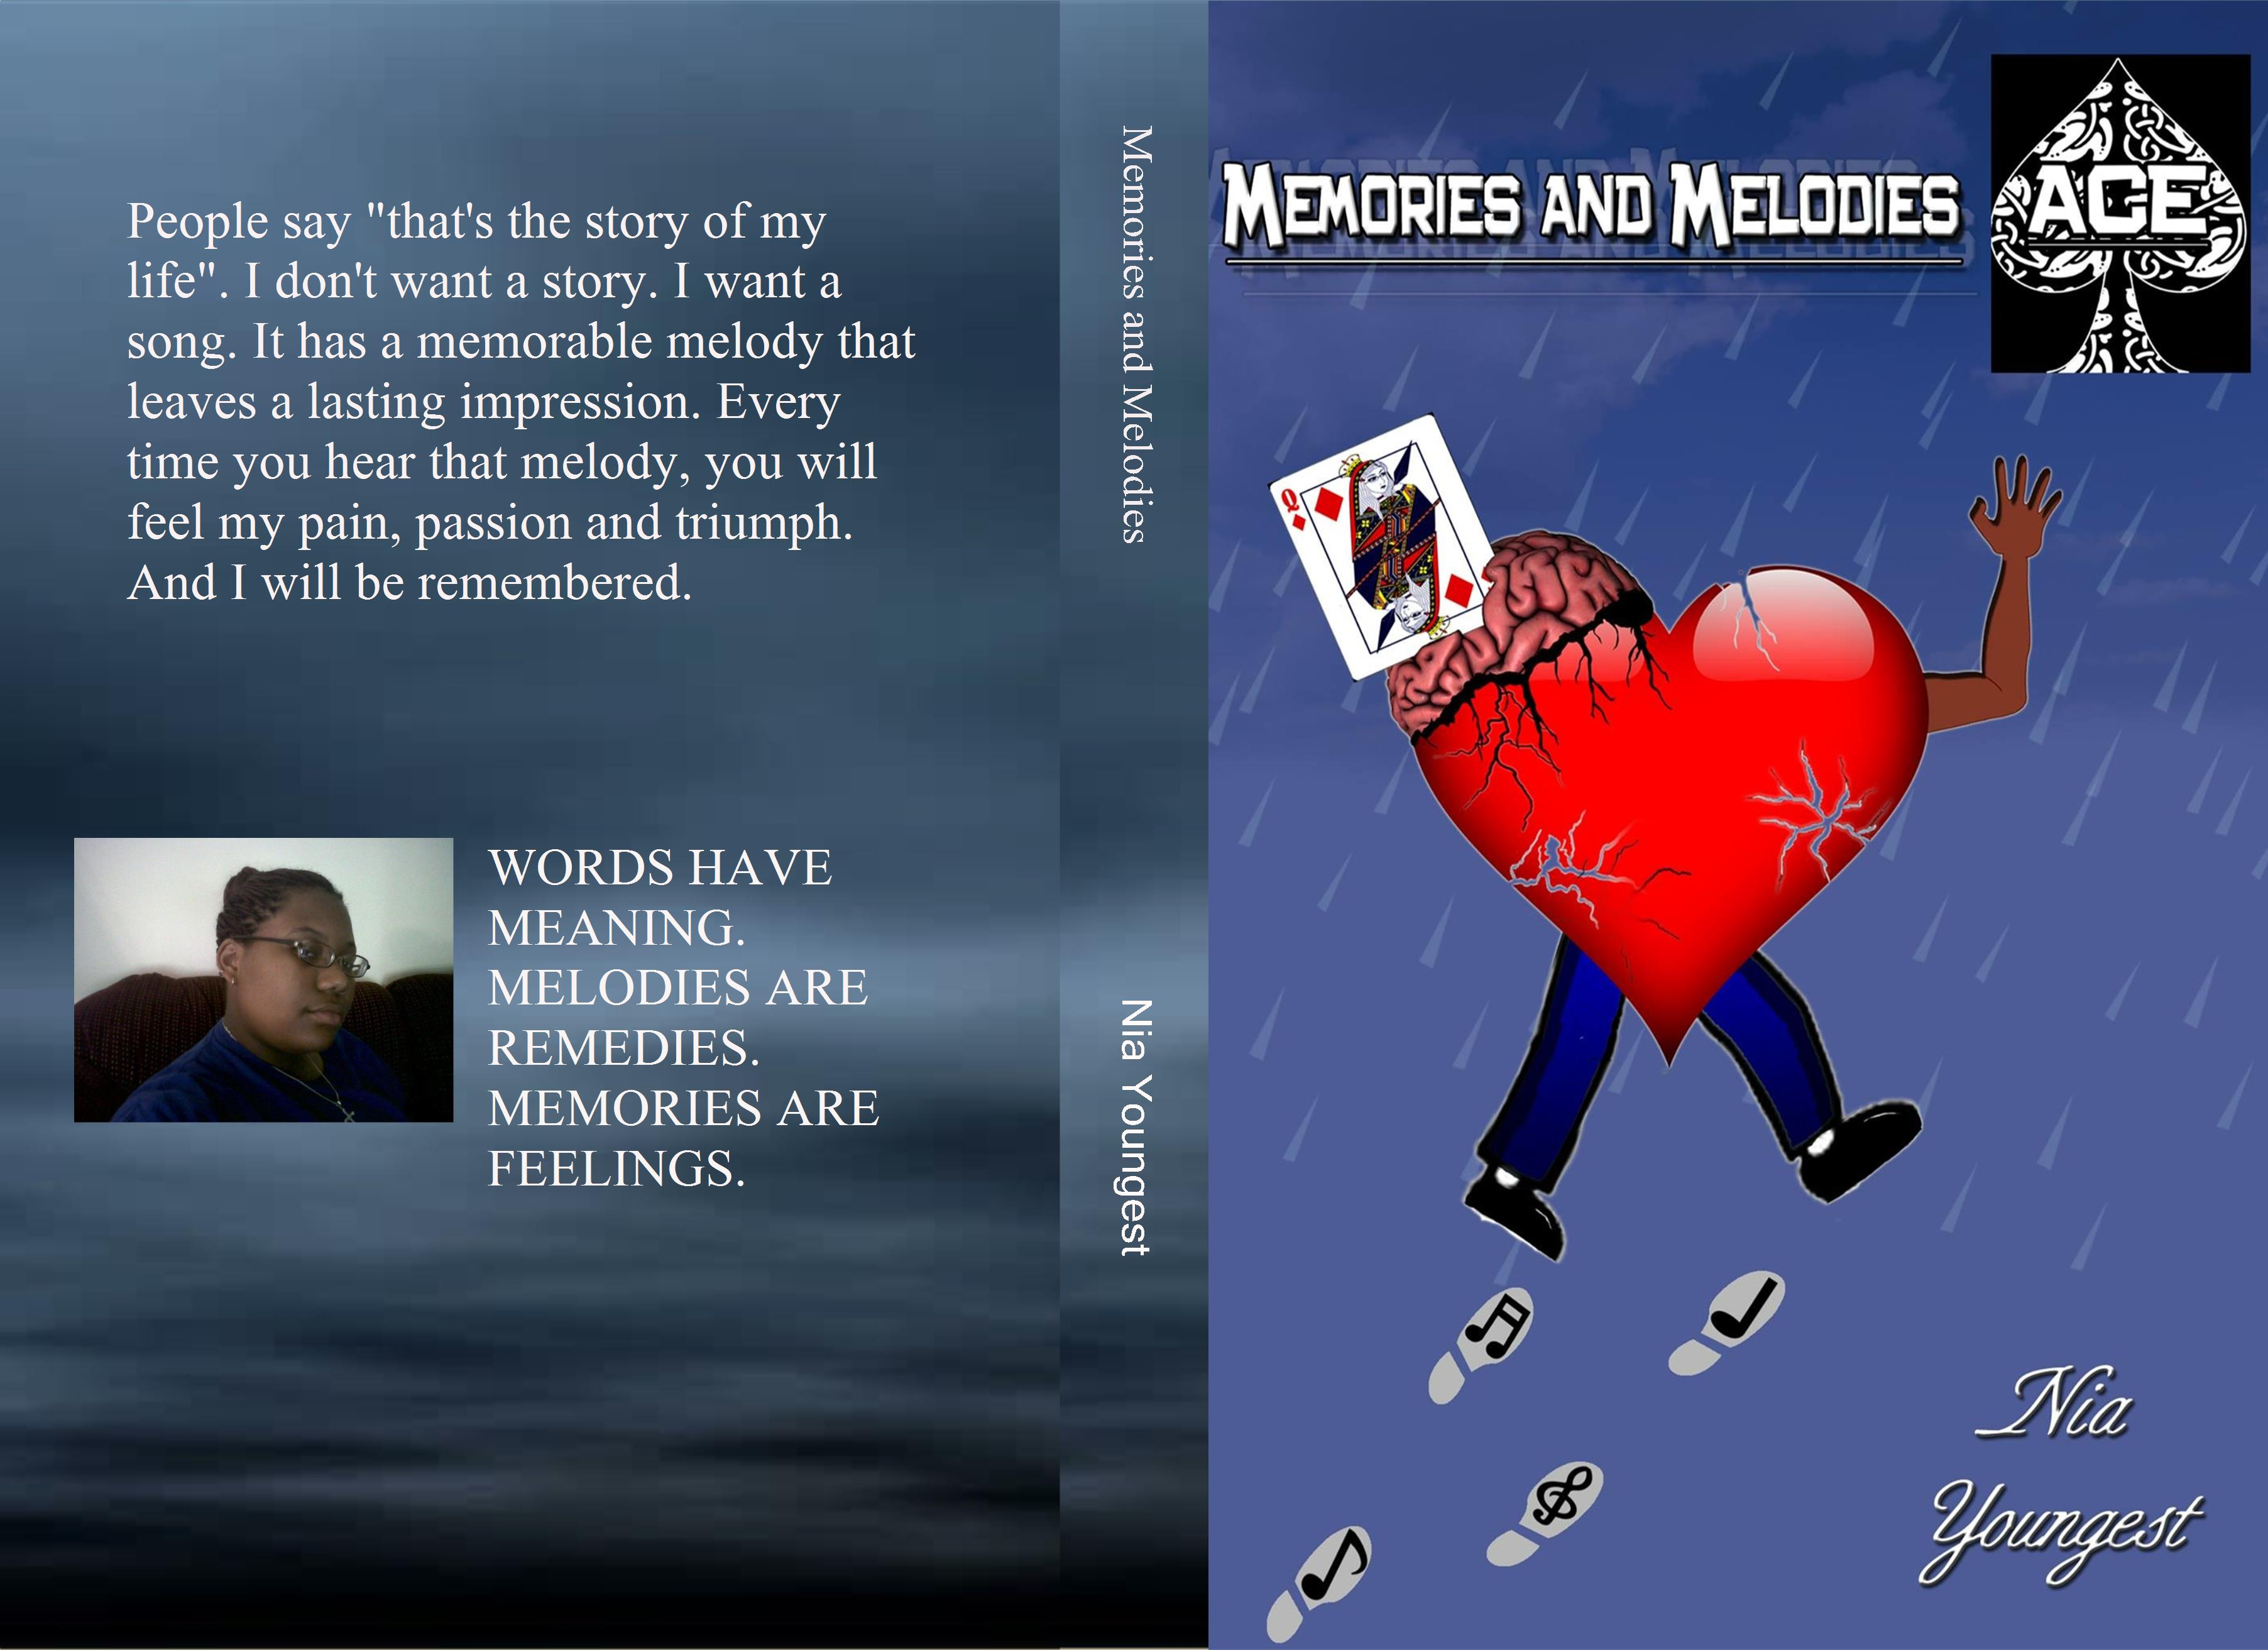 Memories and Melodies cover image